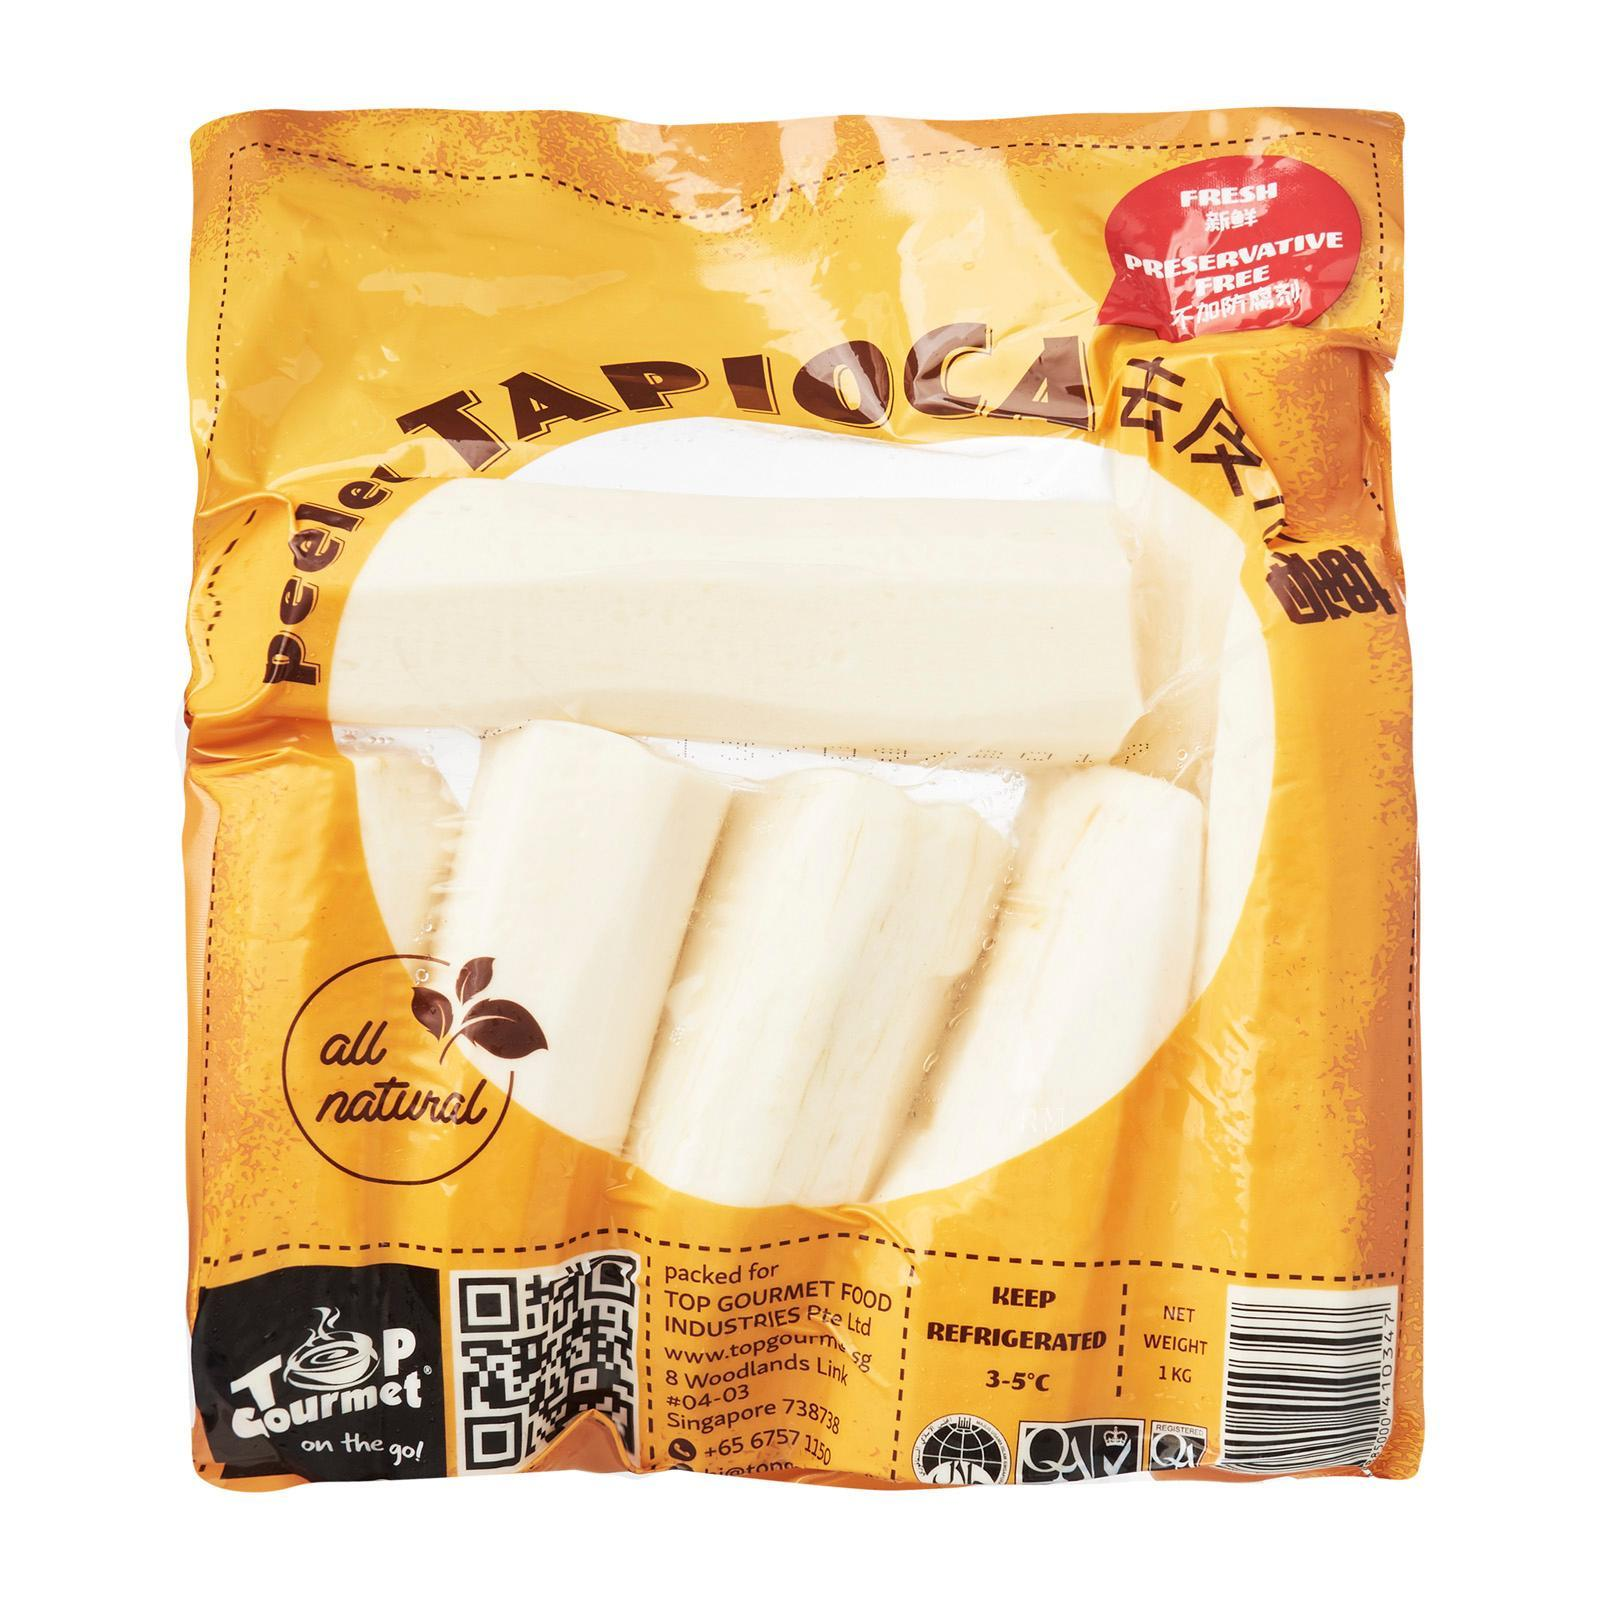 Top Gourmet Peeled Tapioca By Redmart.